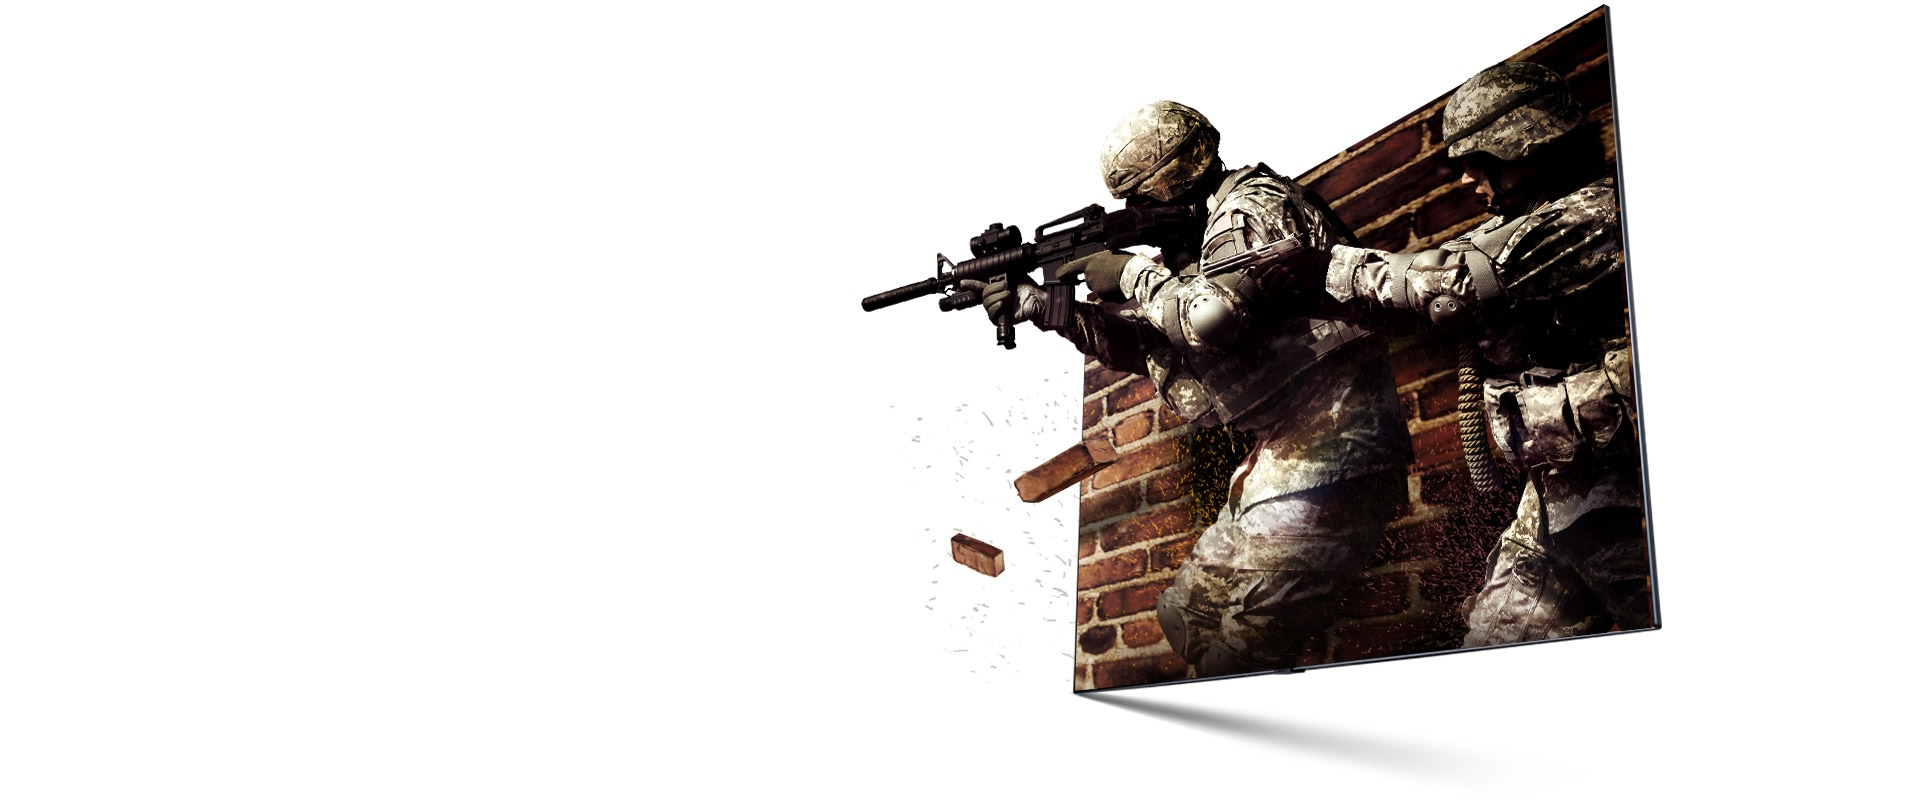 A scene from a FPS game. A solider is about to shooting gun to target. It looks real and dynamic.